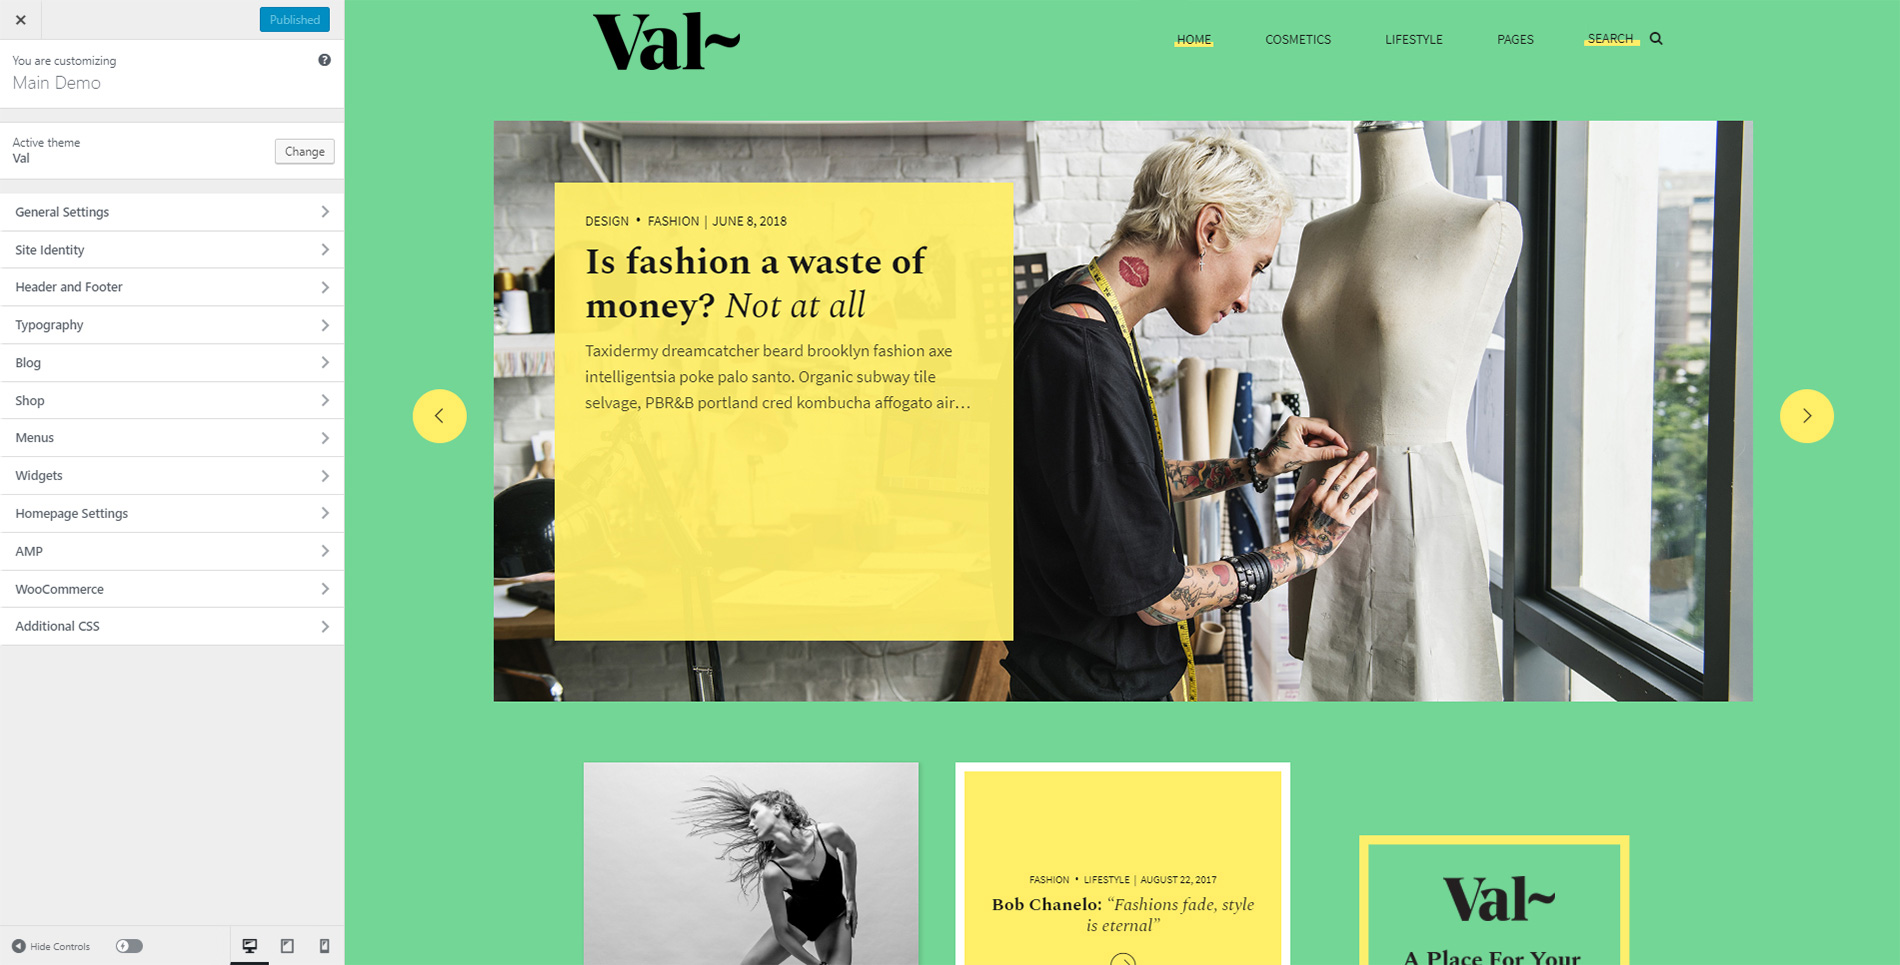 http://documentation.bold-themes.com/val/wp-content/uploads/sites/36/2018/12/val-customize-01.jpg